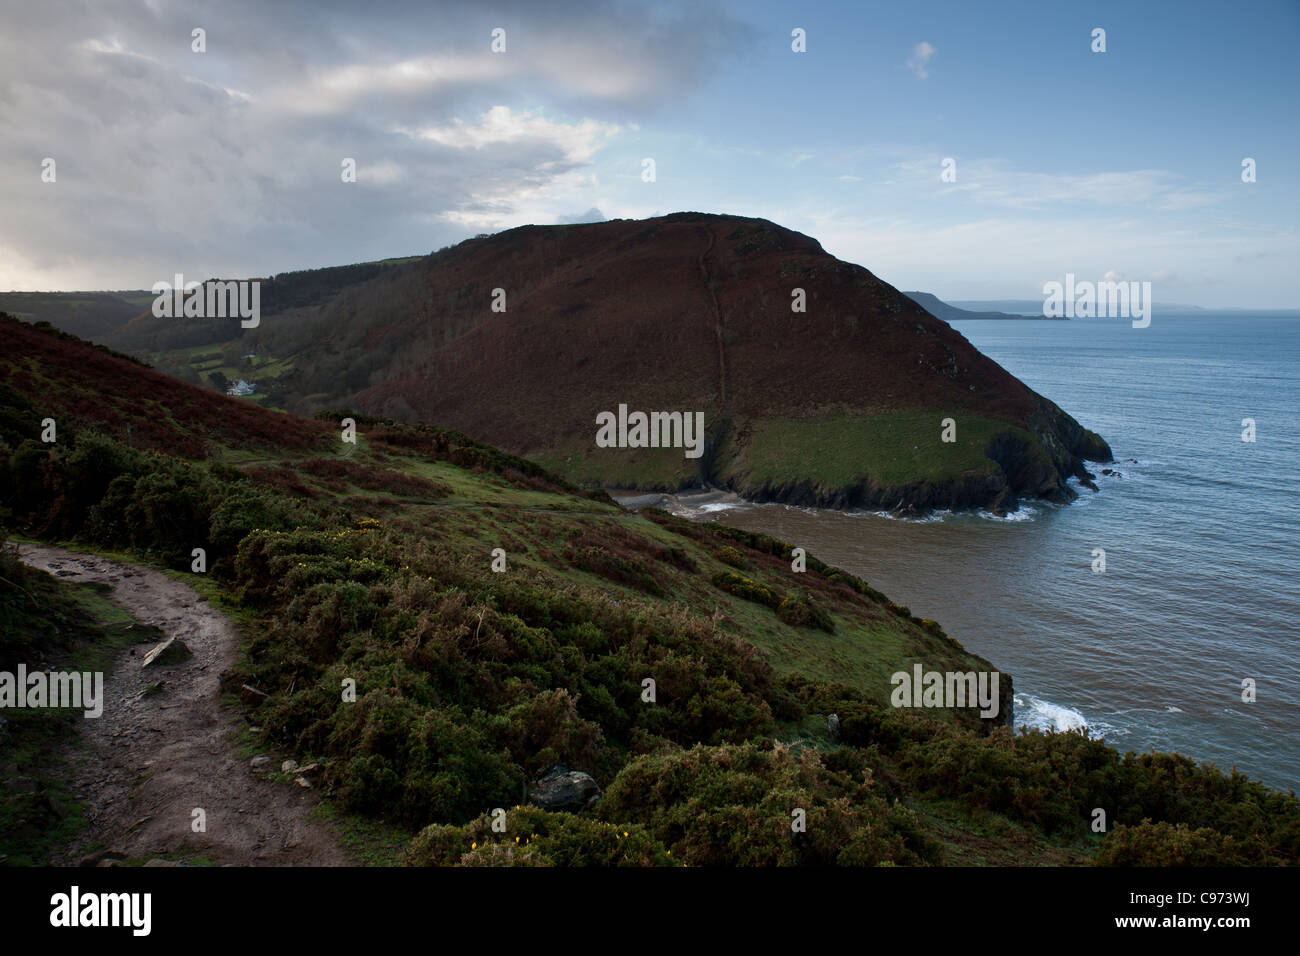 The bay of Cwmtydu as seen from the Ceredigion Coast path near New Quay, Wales - Stock Image